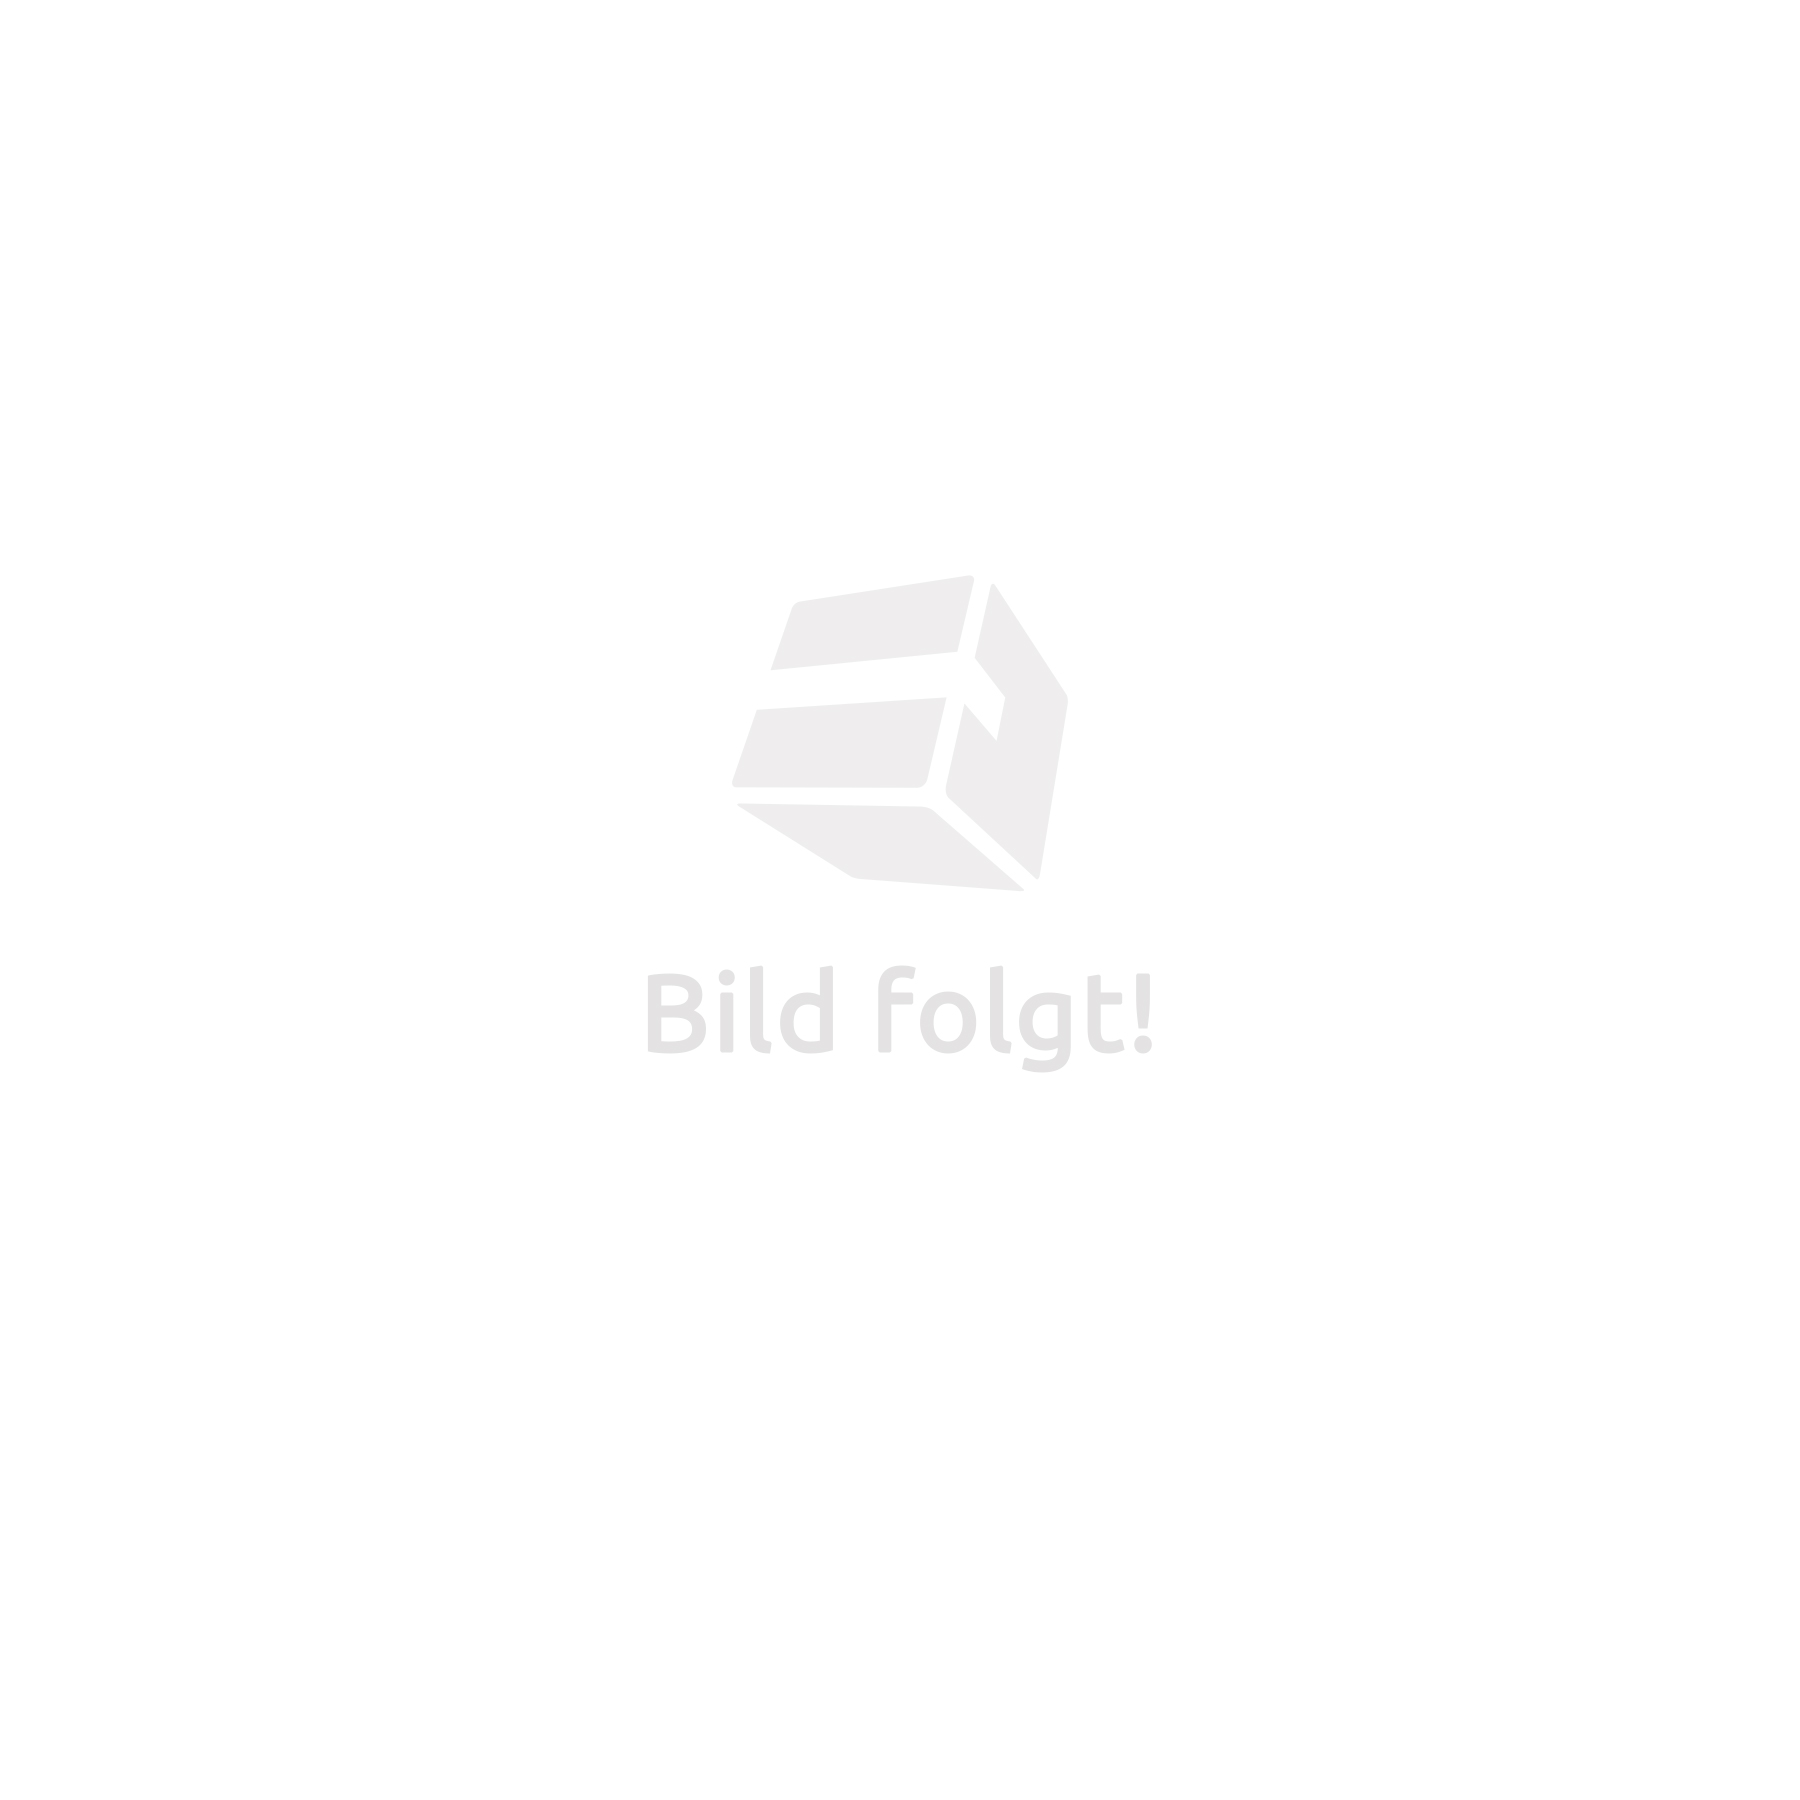 Wooden laptop stand, bed table 55x35x26 adjustable